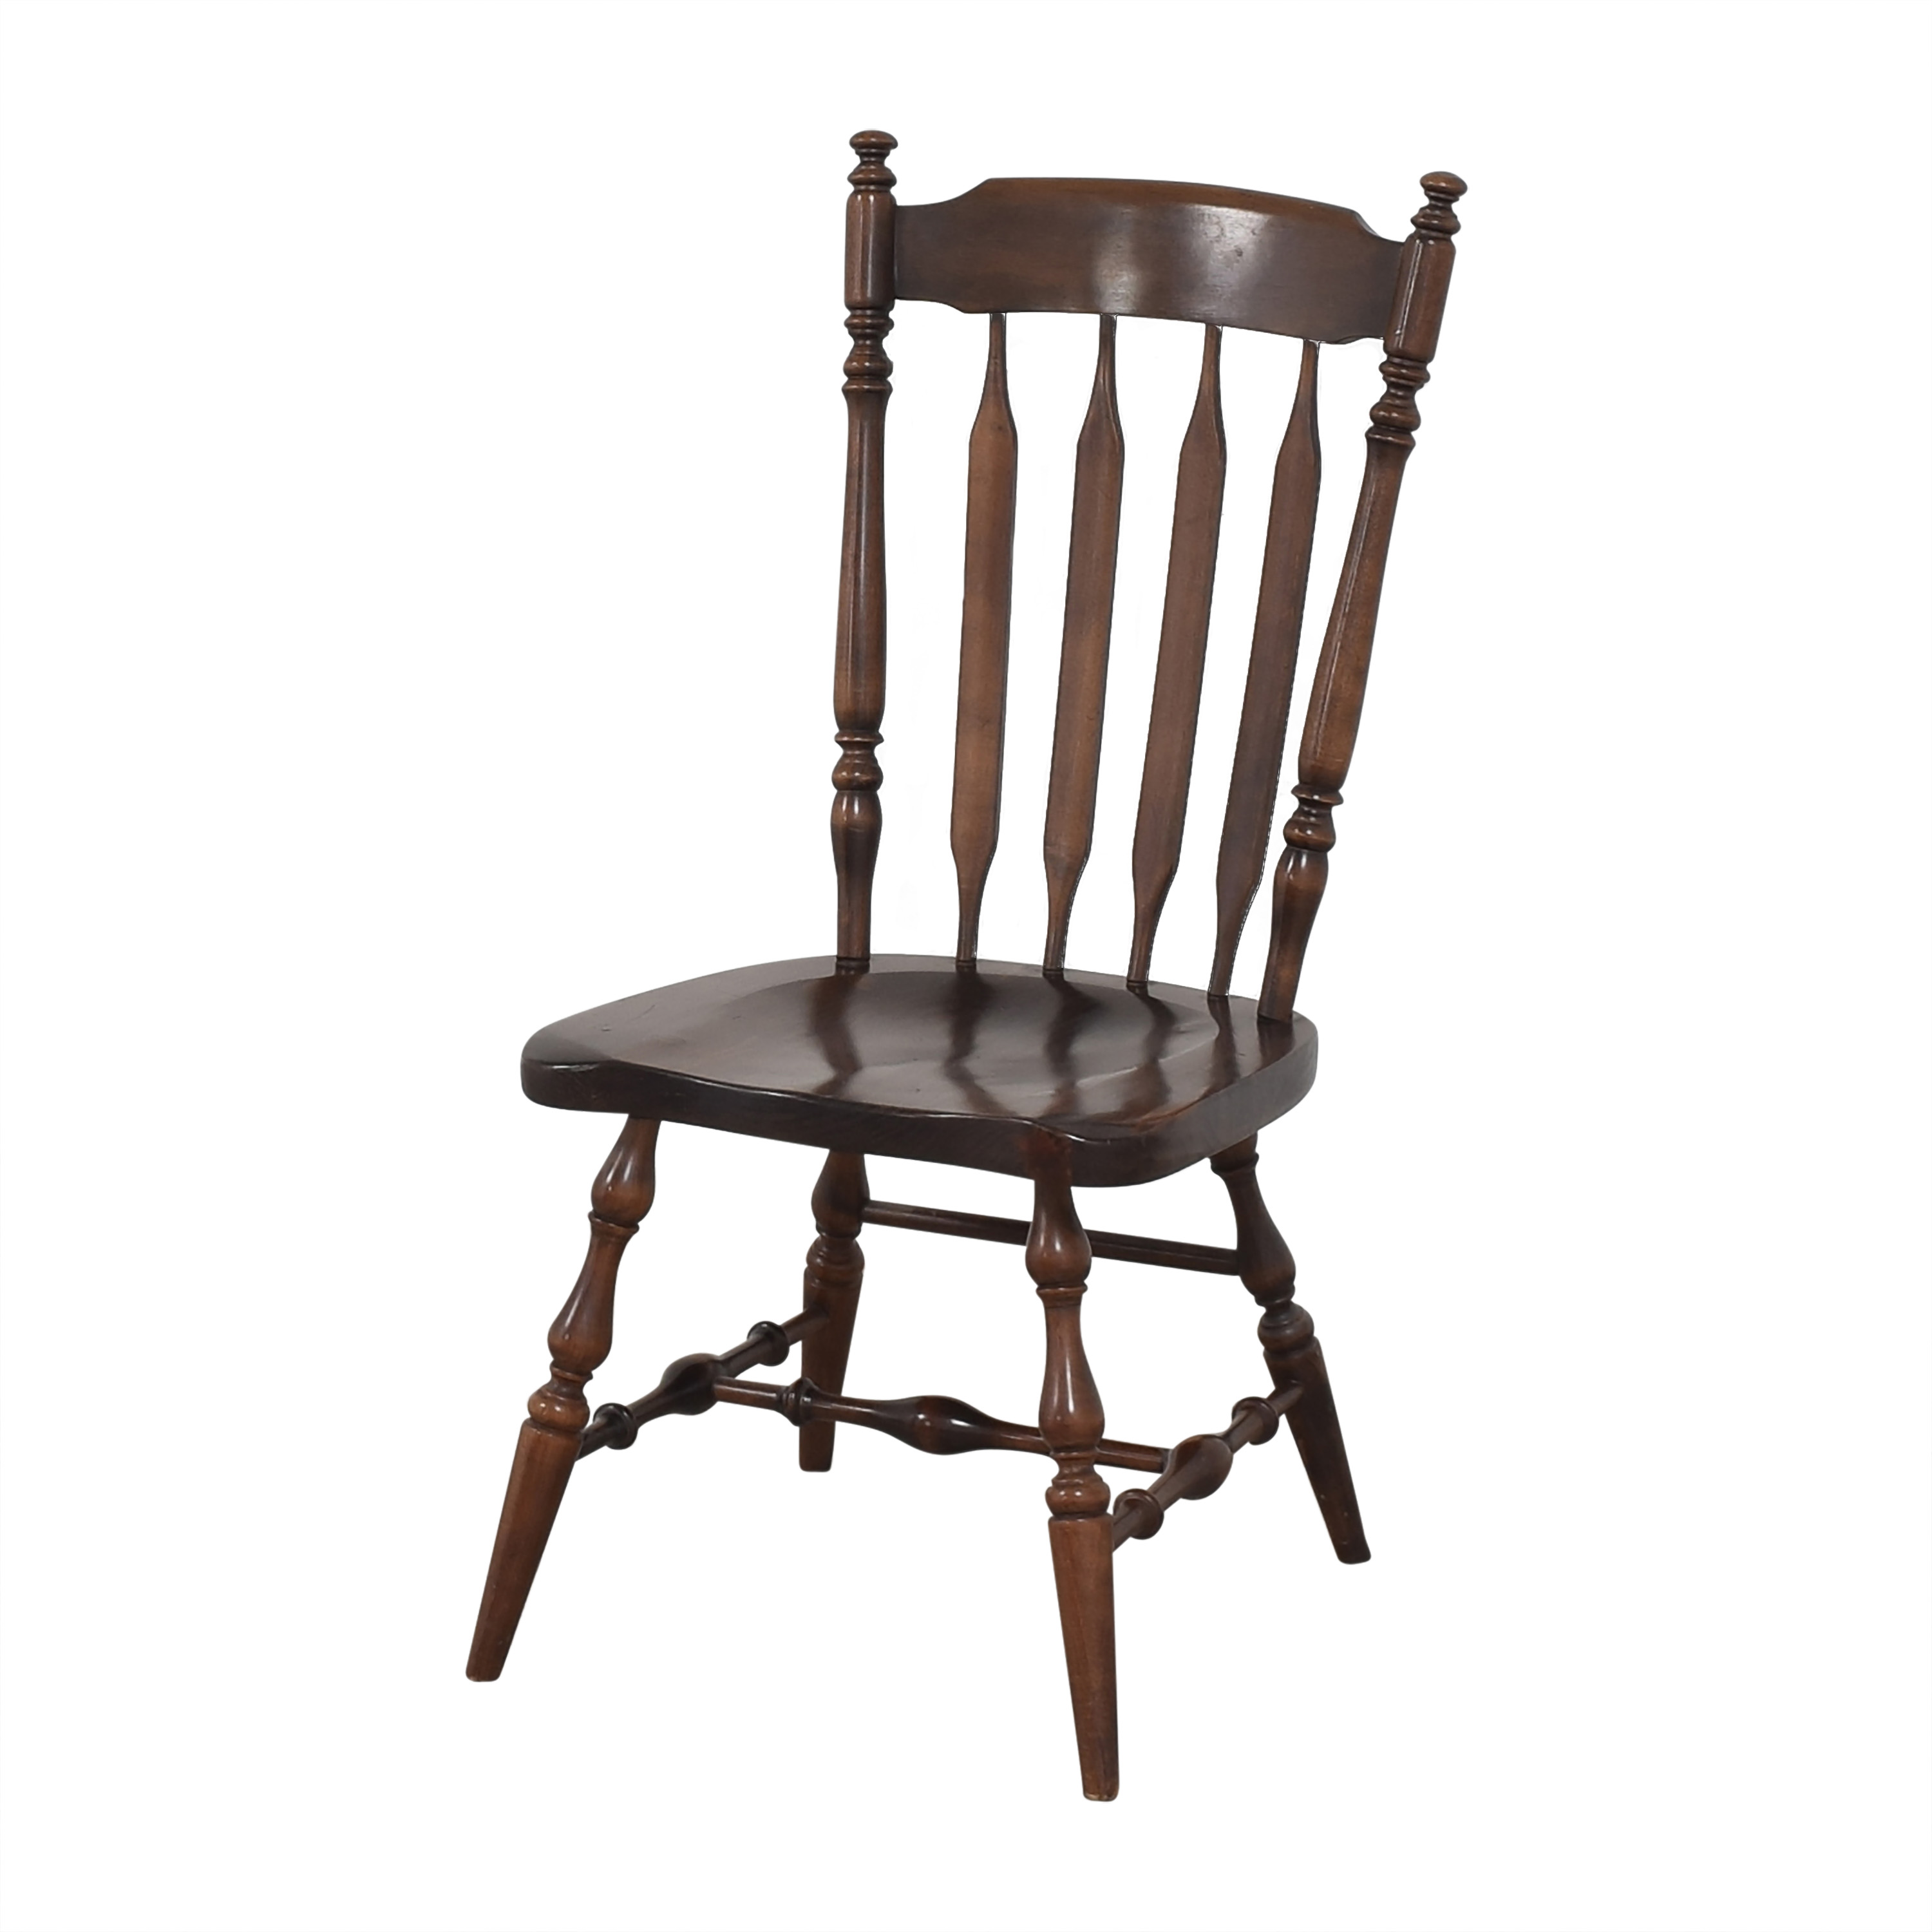 Ethan Allen Ethan Allen Windsor Dining Chairs nyc